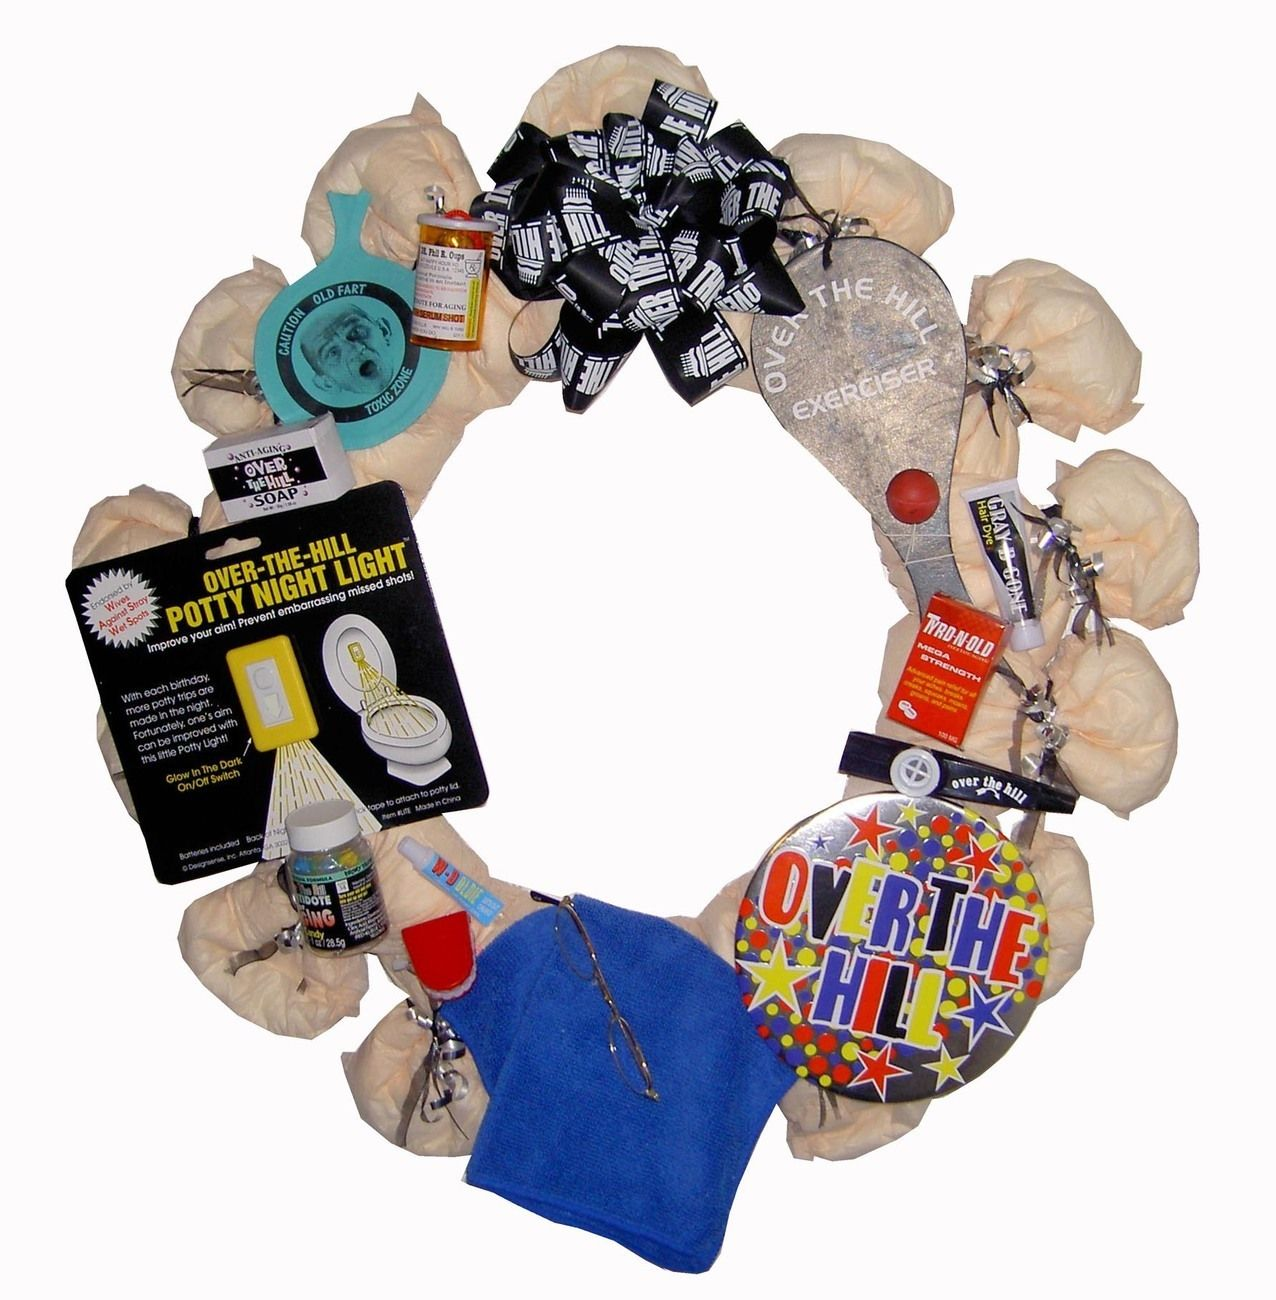 Old People Christmas Gifts: Diaper Wreath-Over The Hill Theme